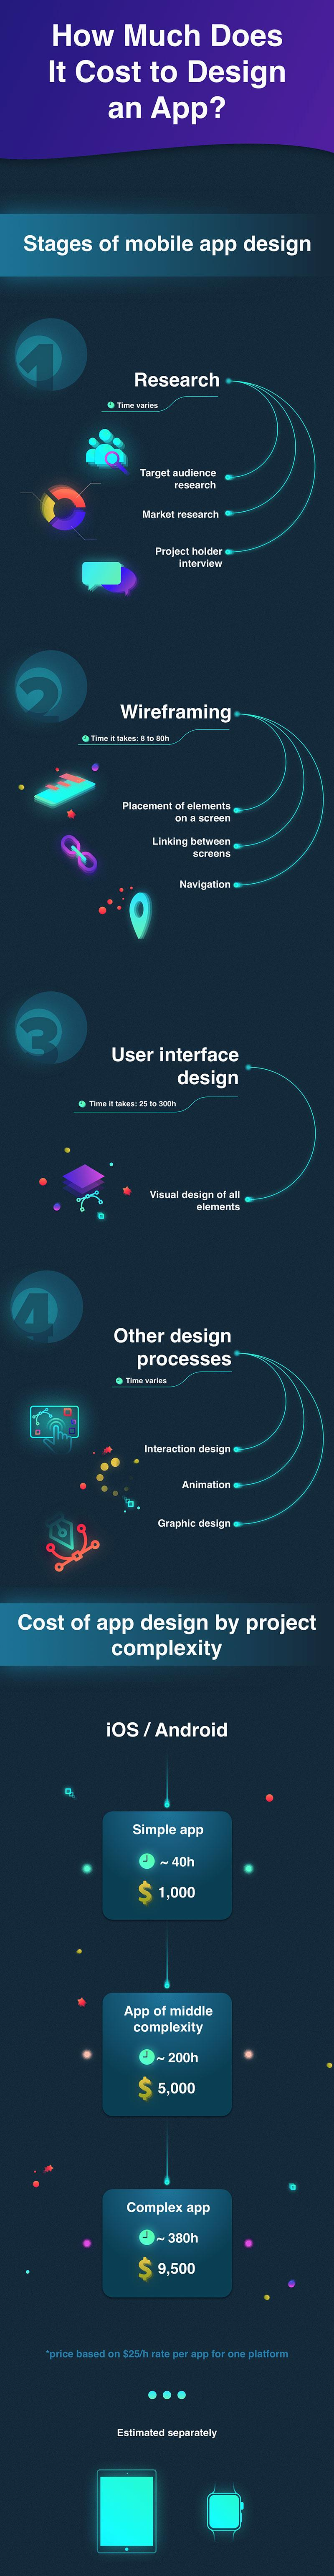 how much does it cost to design an app infographic